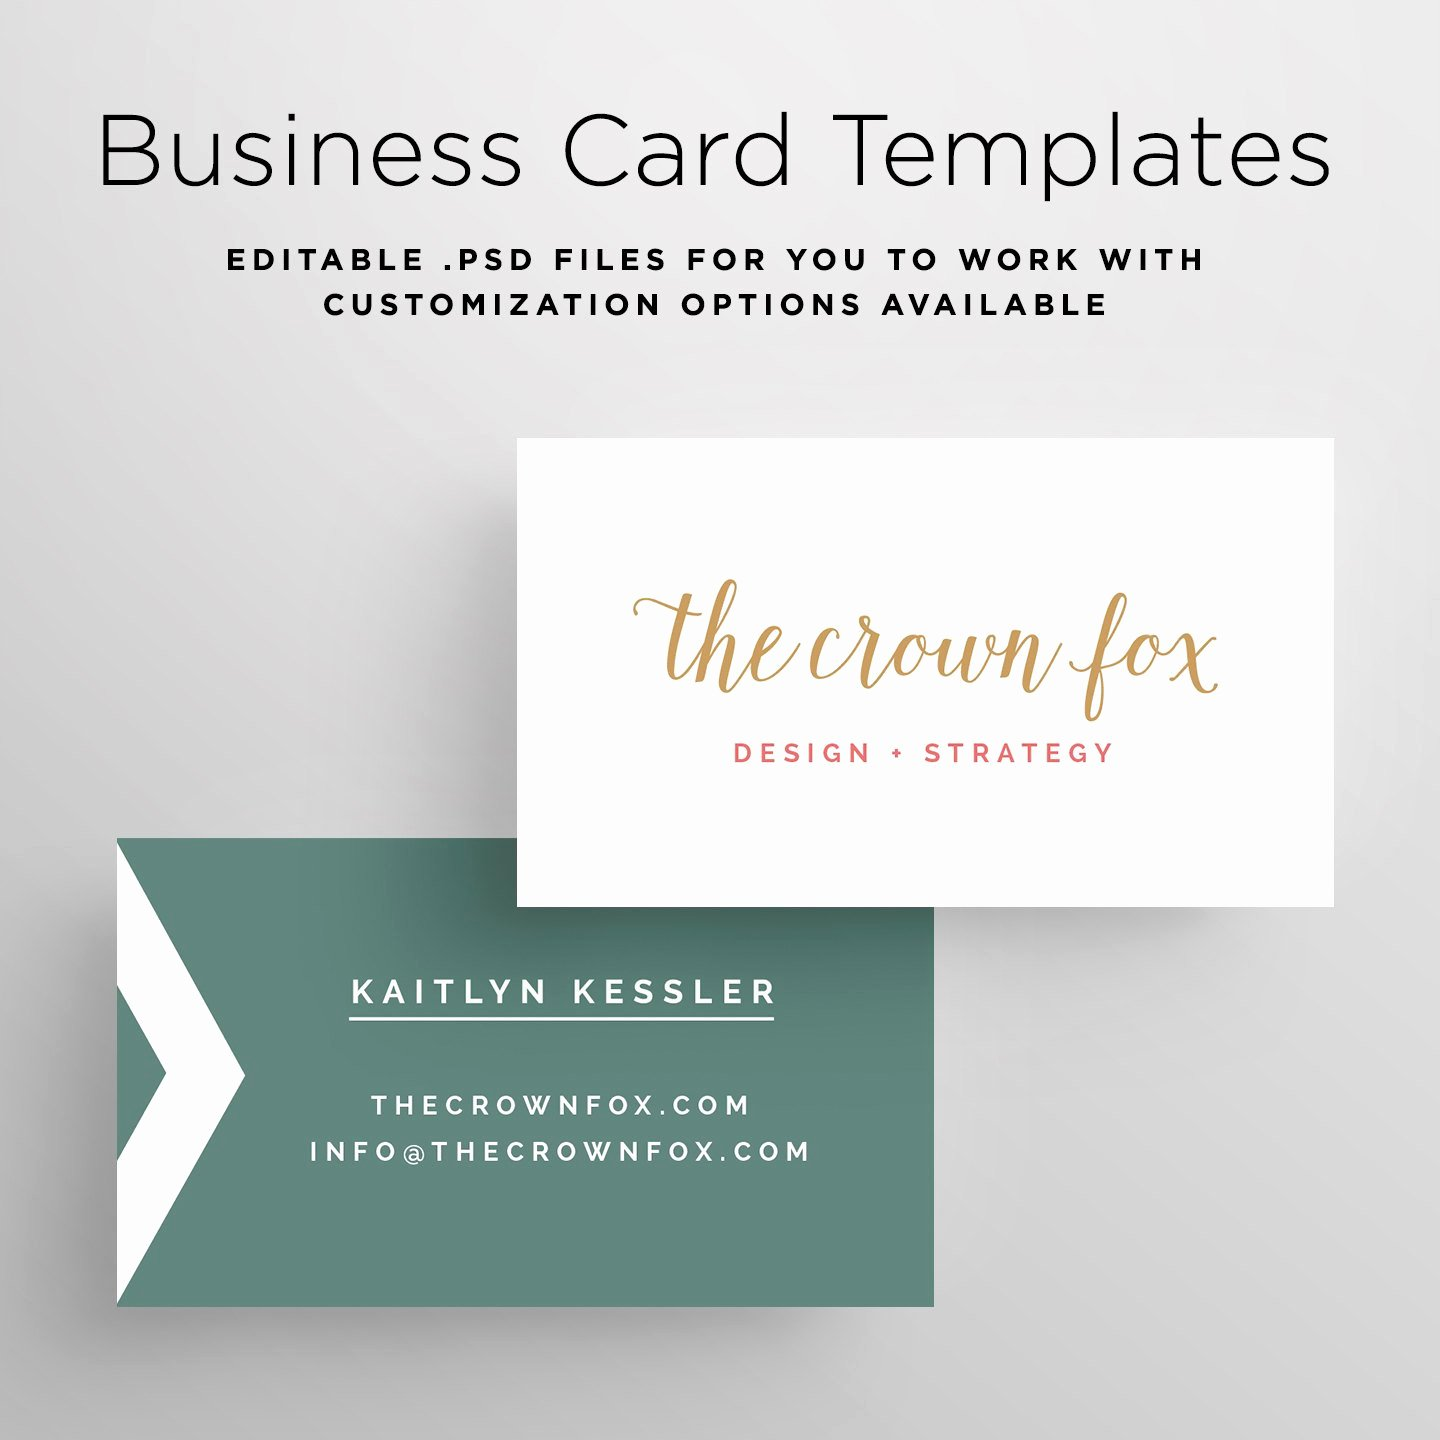 Pages Business Card Template Inspirational Business Card Template Printable Design Business Card